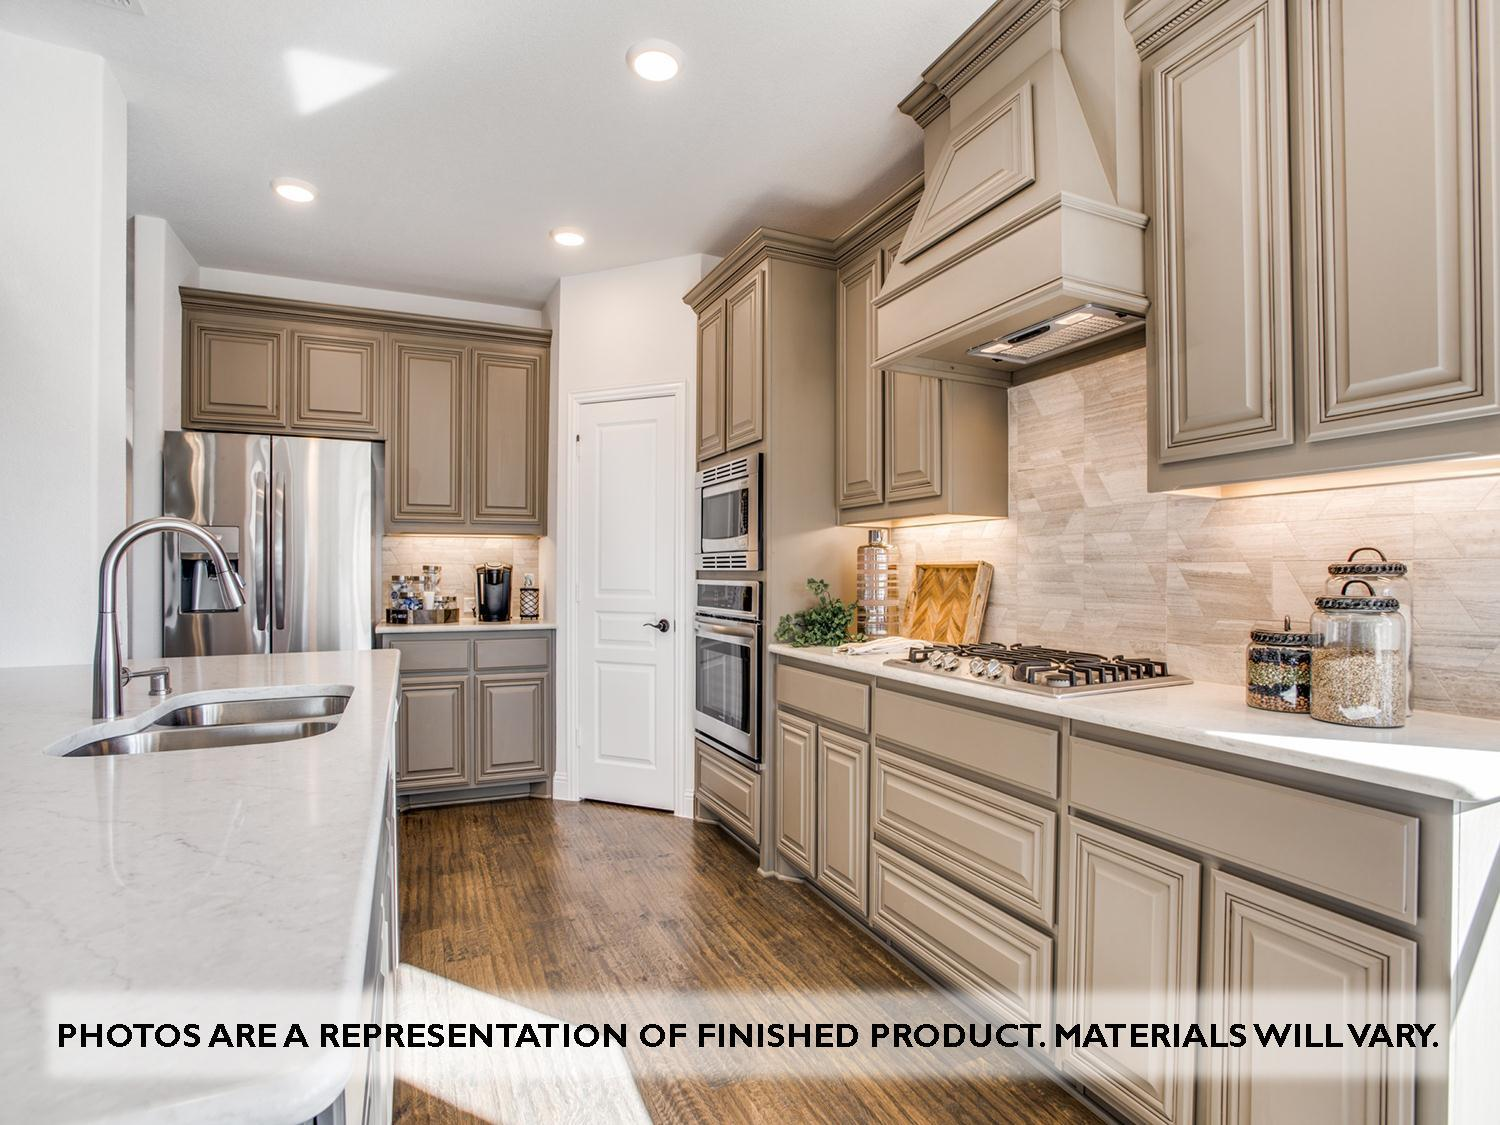 Kitchen featured in the Magnolia II Side Entry By Bloomfield Homes in Dallas, TX